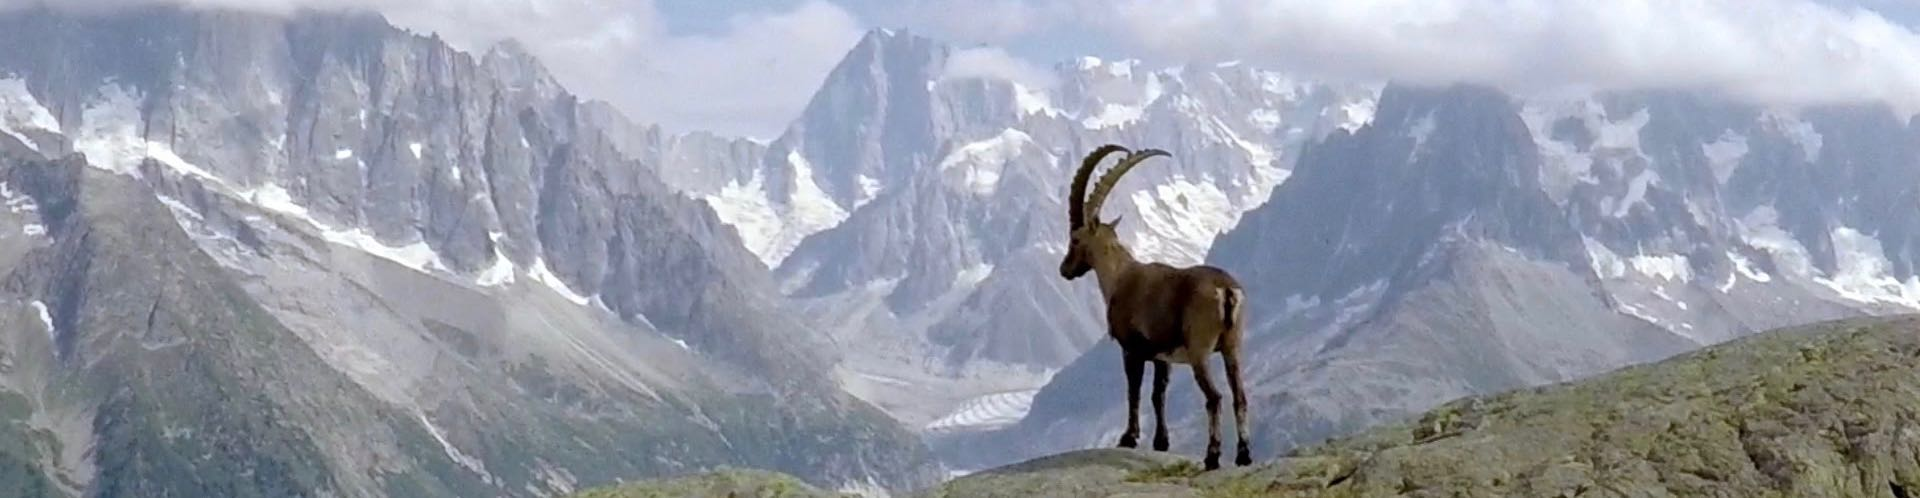 Alpine ibex in high mountain rocky pastures of central Europe, these hunting areas are shared with t